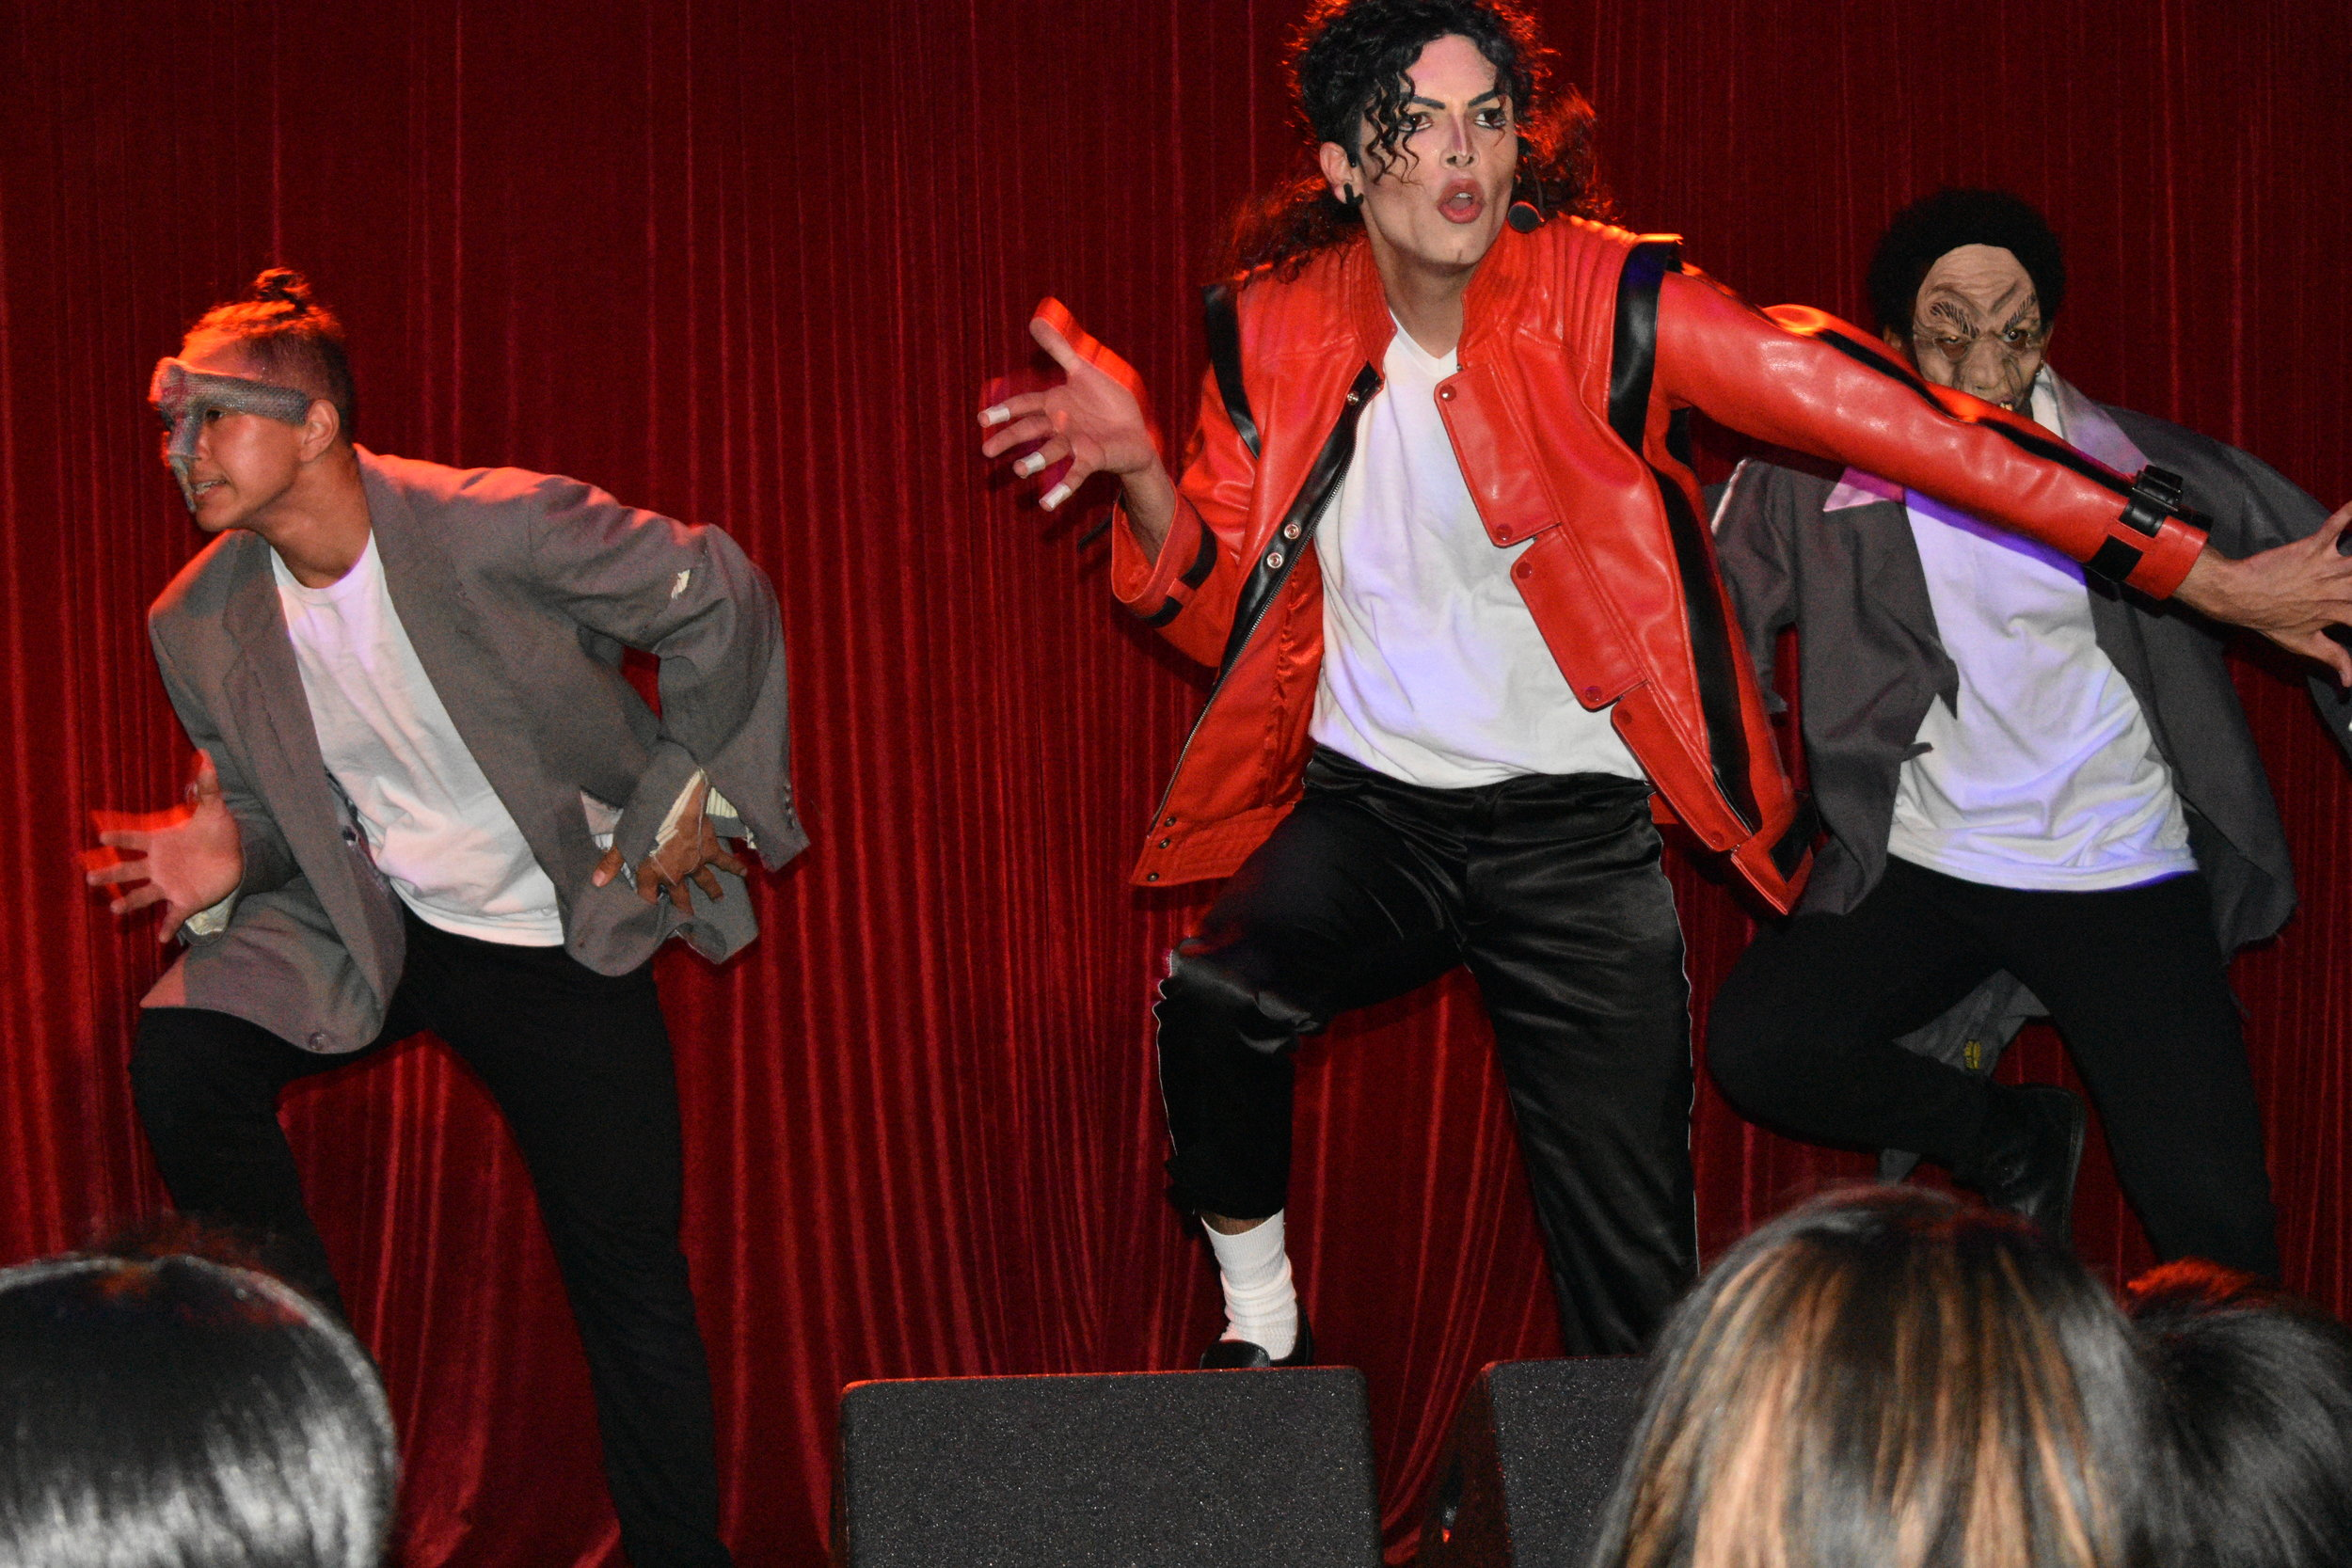 Artist Rem J resurrects the late Michael Jackson onstage at Harvelle's during the Bring Hollywood Home event. The pop king's perfect pitch supported Bring Hollywood Home's mission to keep industry jobs in Los Angeles.